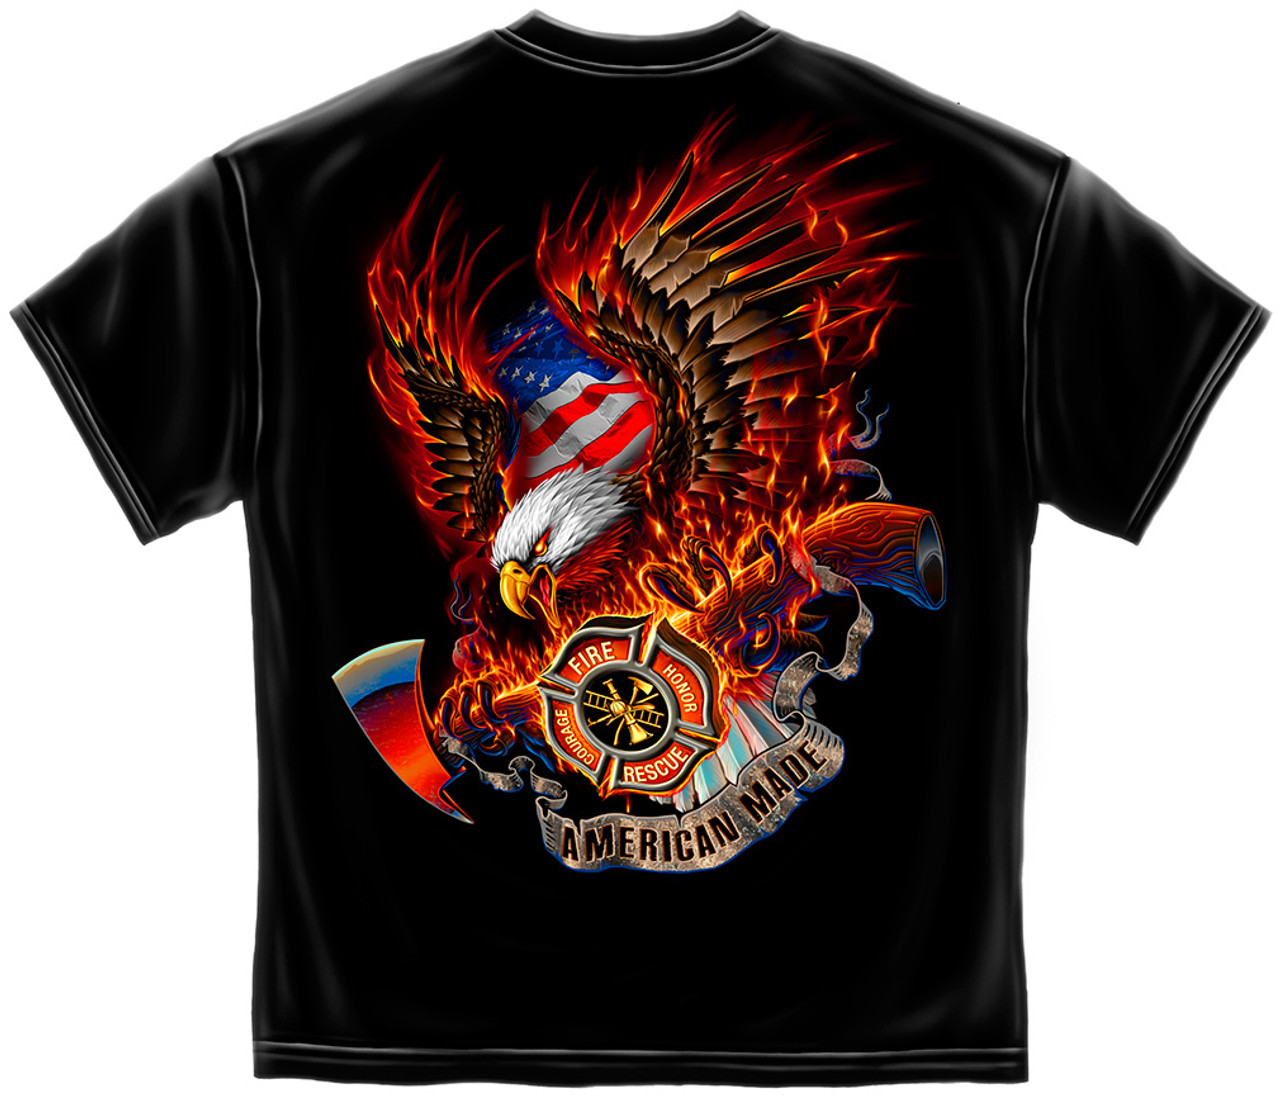 American Made Fire Rescue T Shirt Ff2062 The Emergency Mall